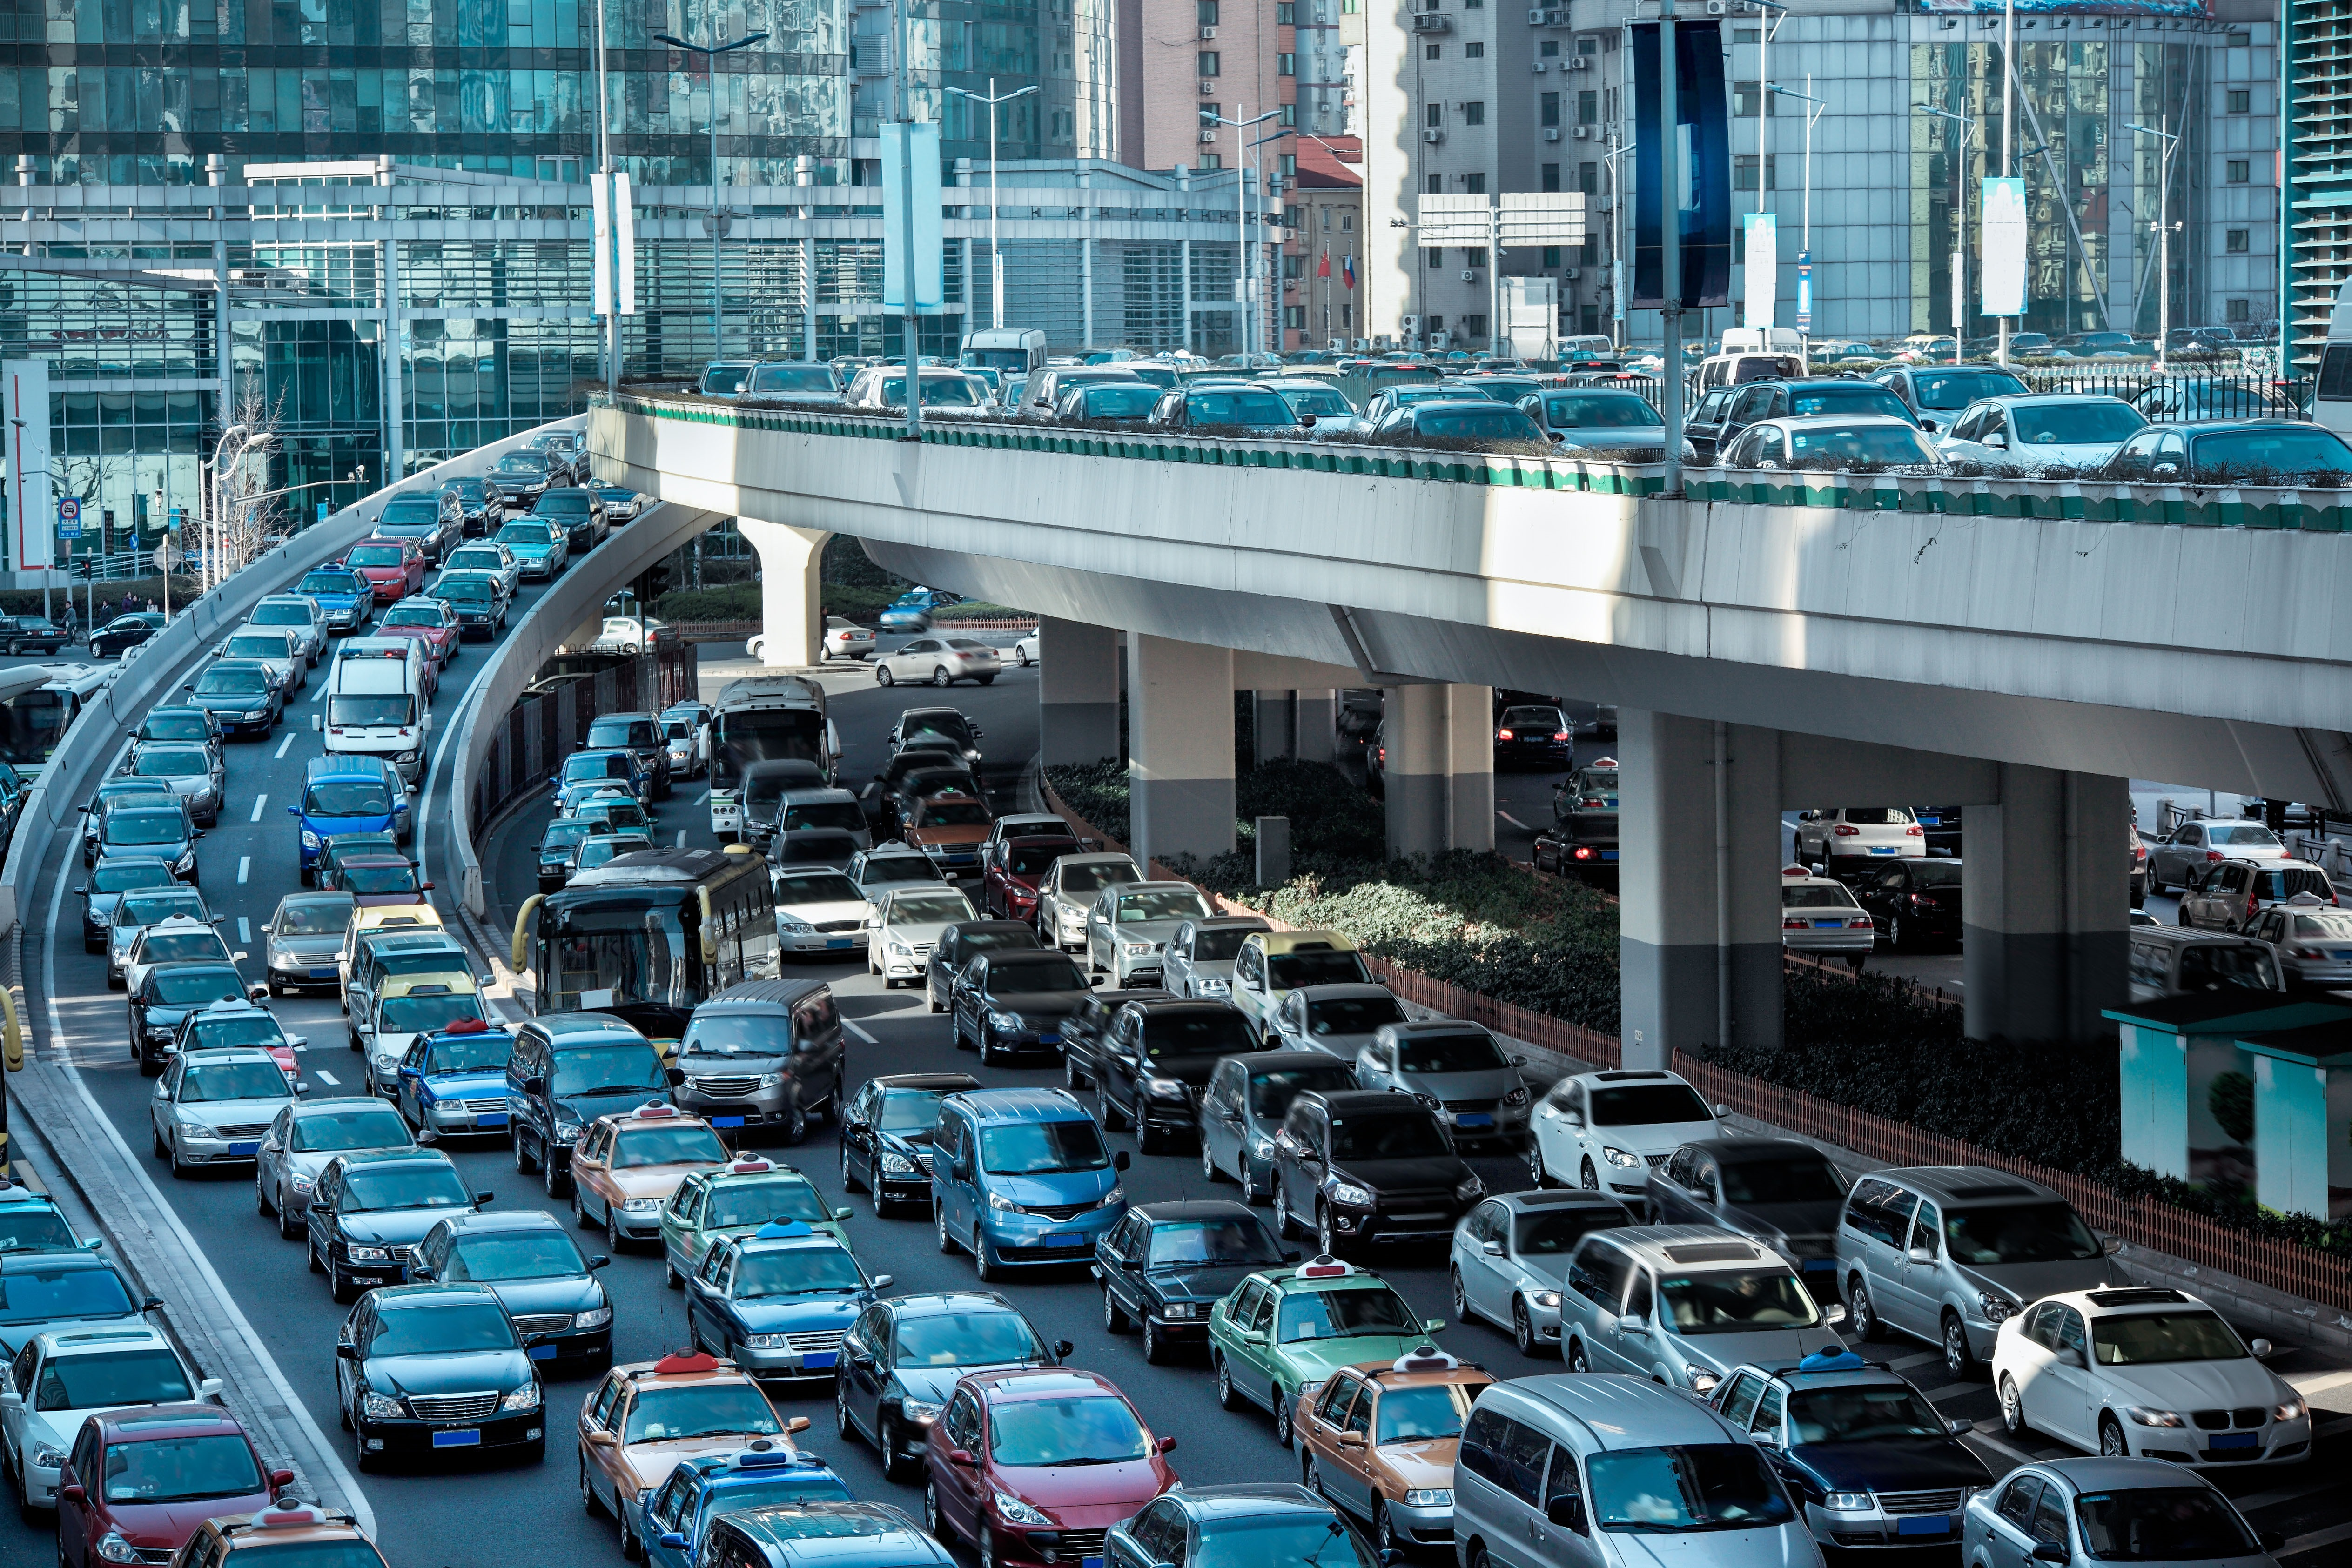 5 reasons why auto accidents are on the rise   PropertyCasualty360